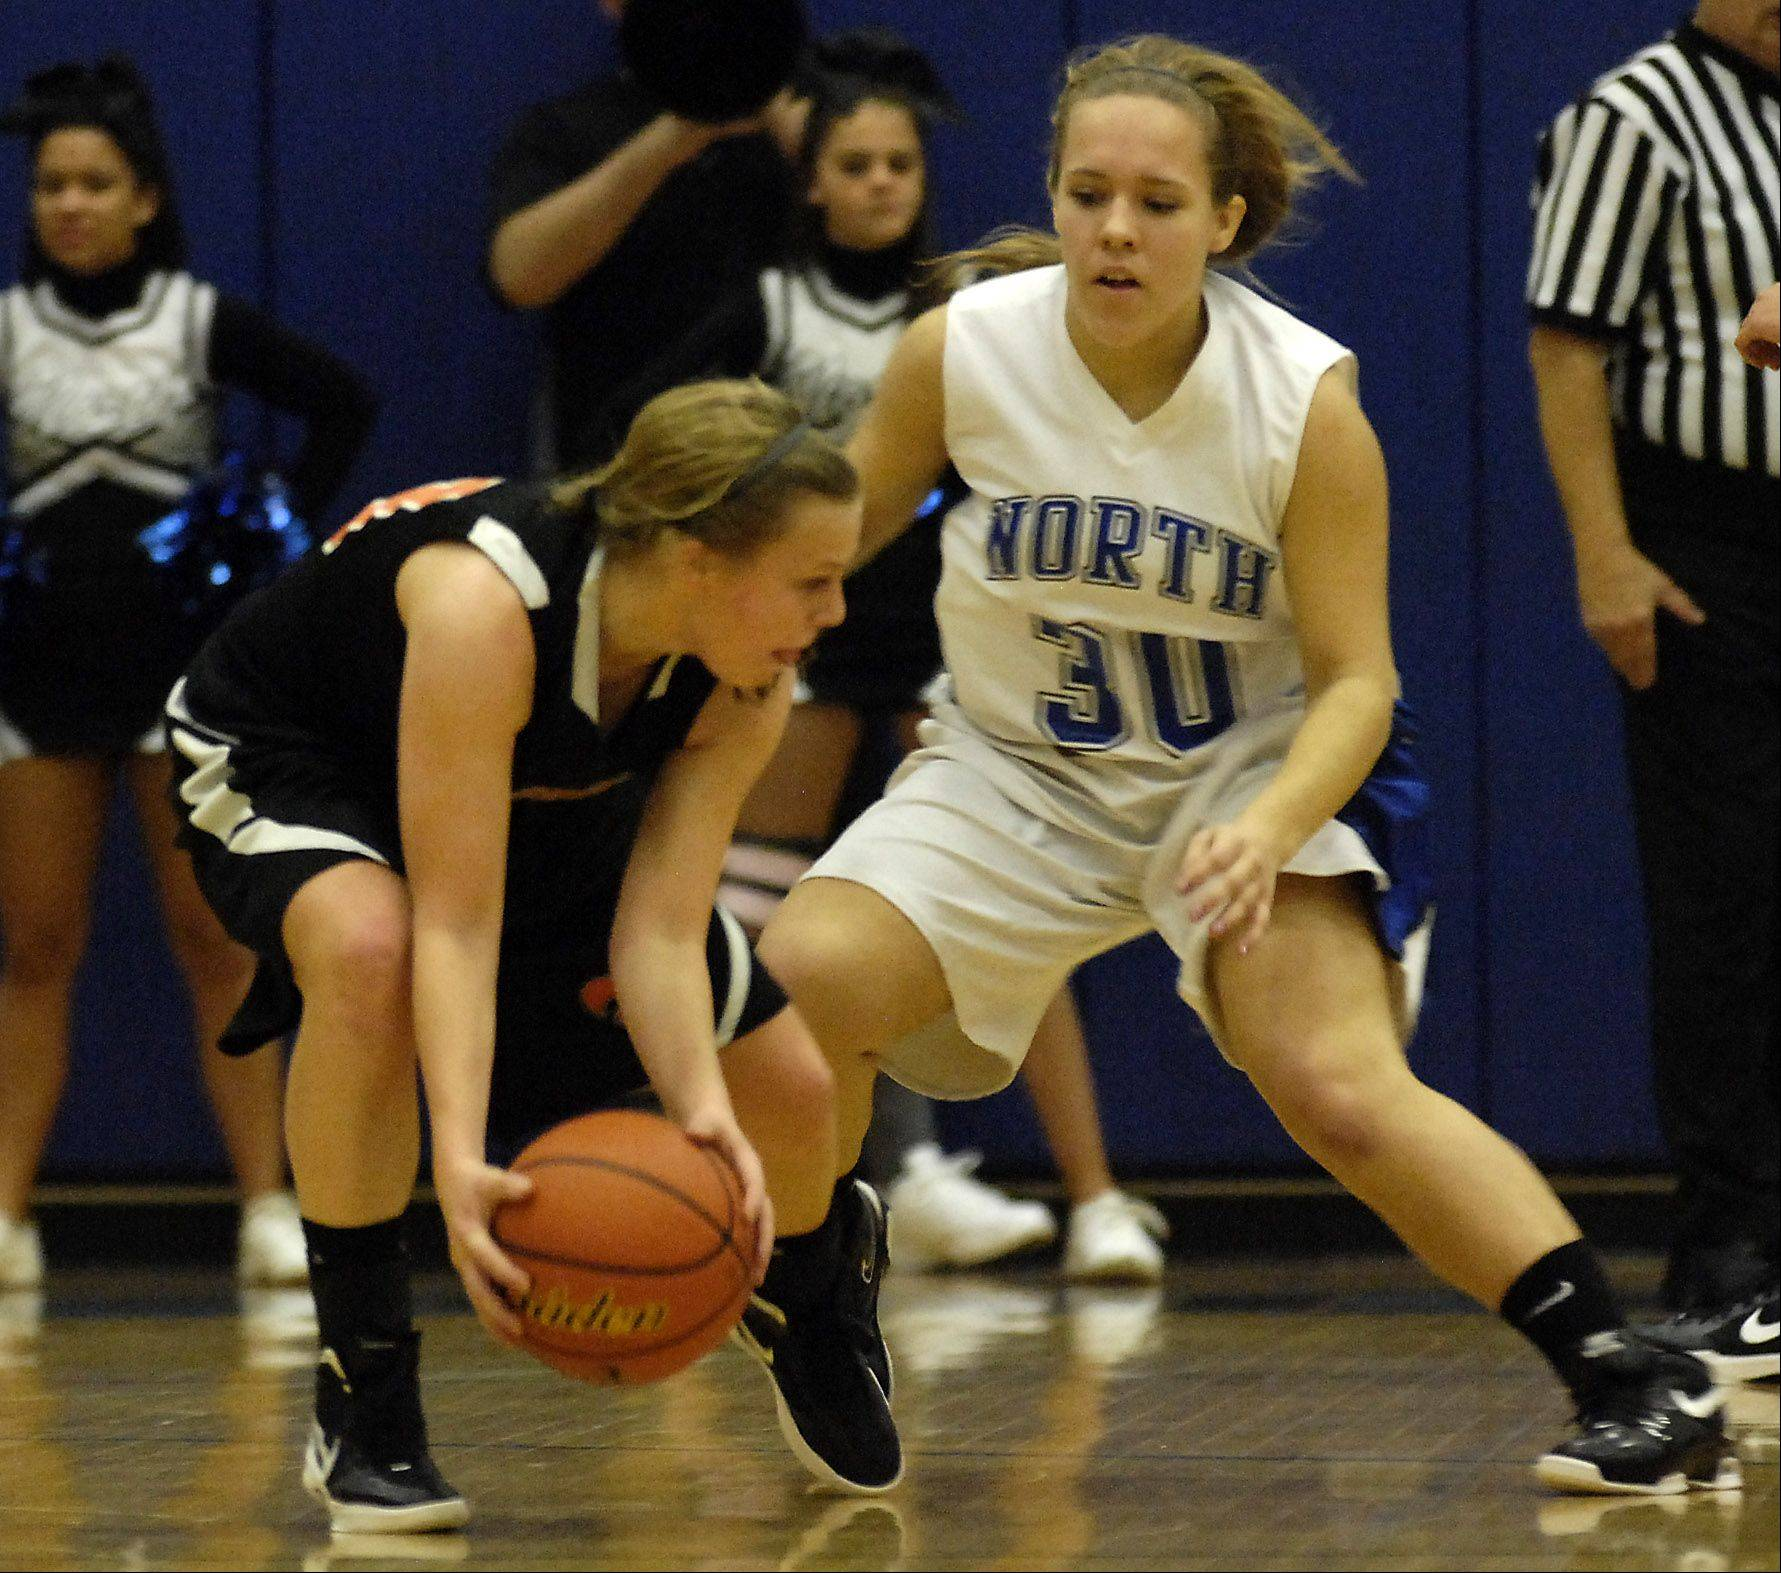 St. Charles East's Amanda Hilton tries to keep the ball from St. Charles North's Ava Tarka during their game Wednesday in St. Charles.